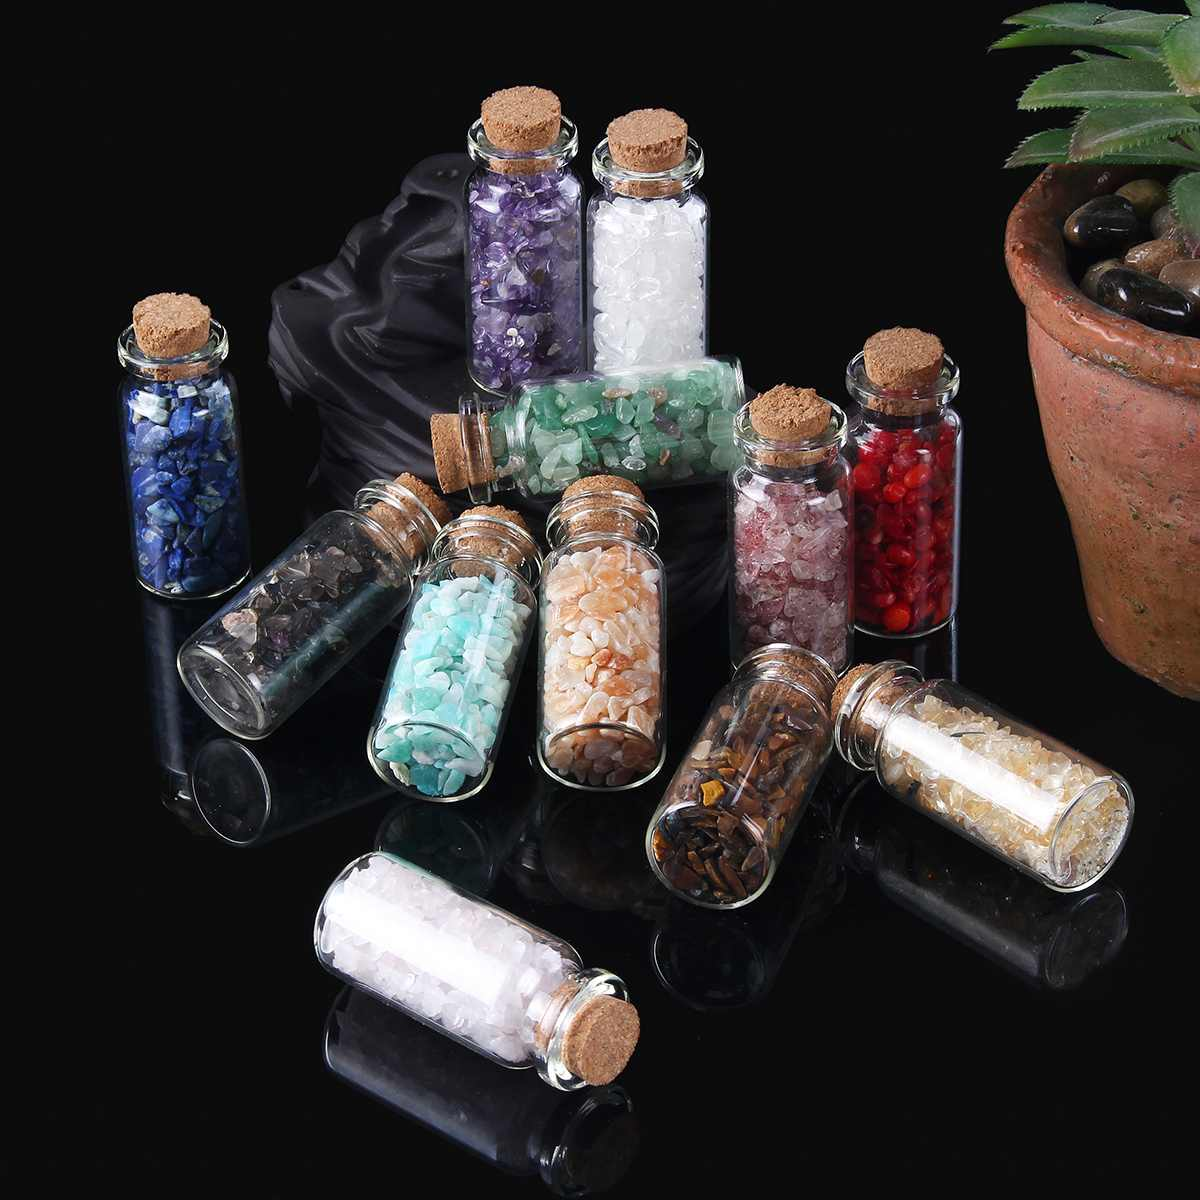 KIWARM 30g 12 Types Natural Quartz Crystal Stone Crystal Gravel Wishing Bottle Gemstone Natural Quartz Stones Chip Mineral